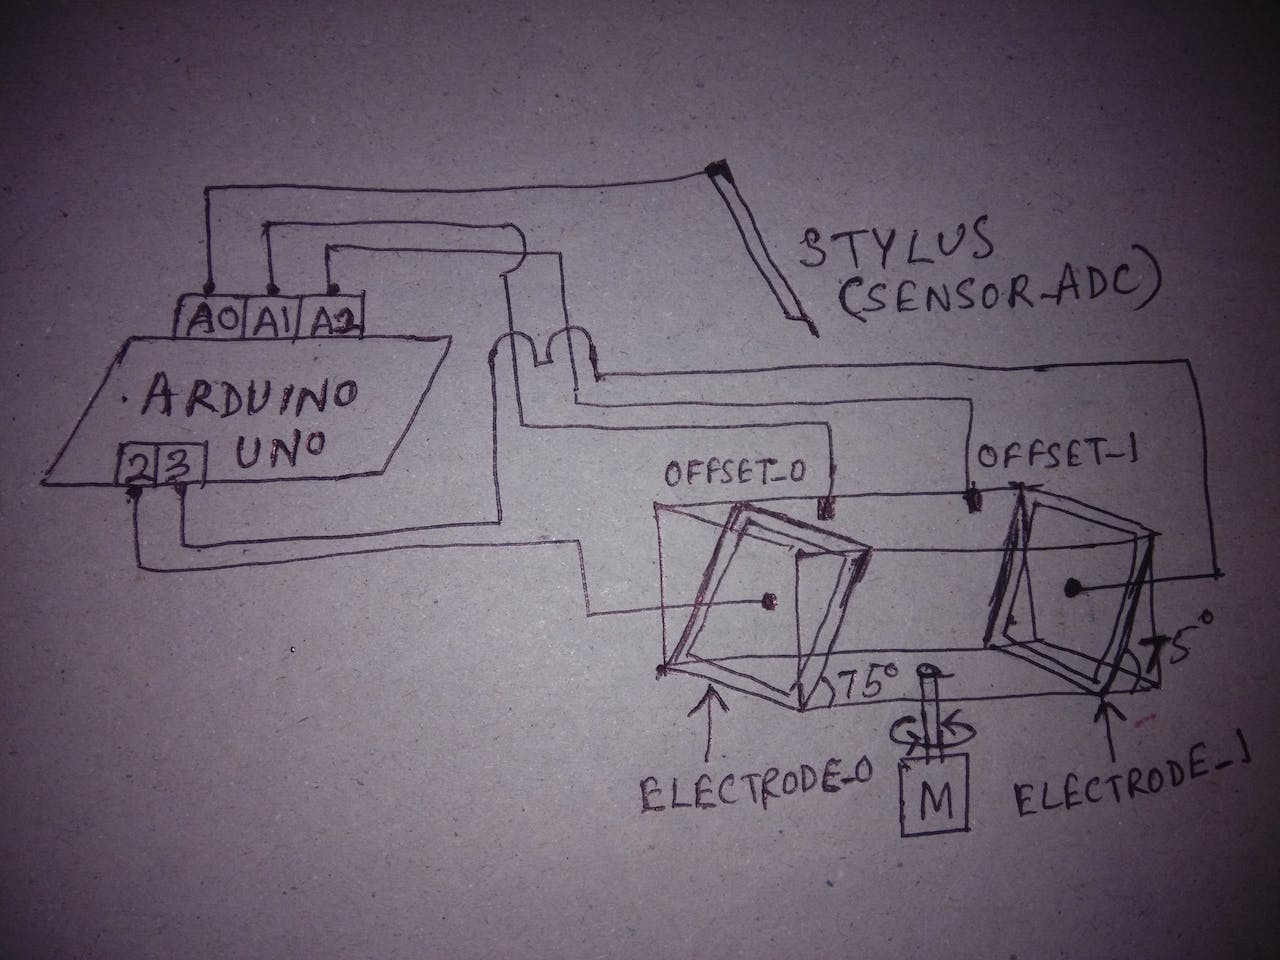 Low Cost Accurate 3d Positioning Open Electronics Arduino Uno Pinout Diagram Make Connect A Wire From One Of Those Electrode Plates To Digital Pin 2 The Now This Plate Becomes 0